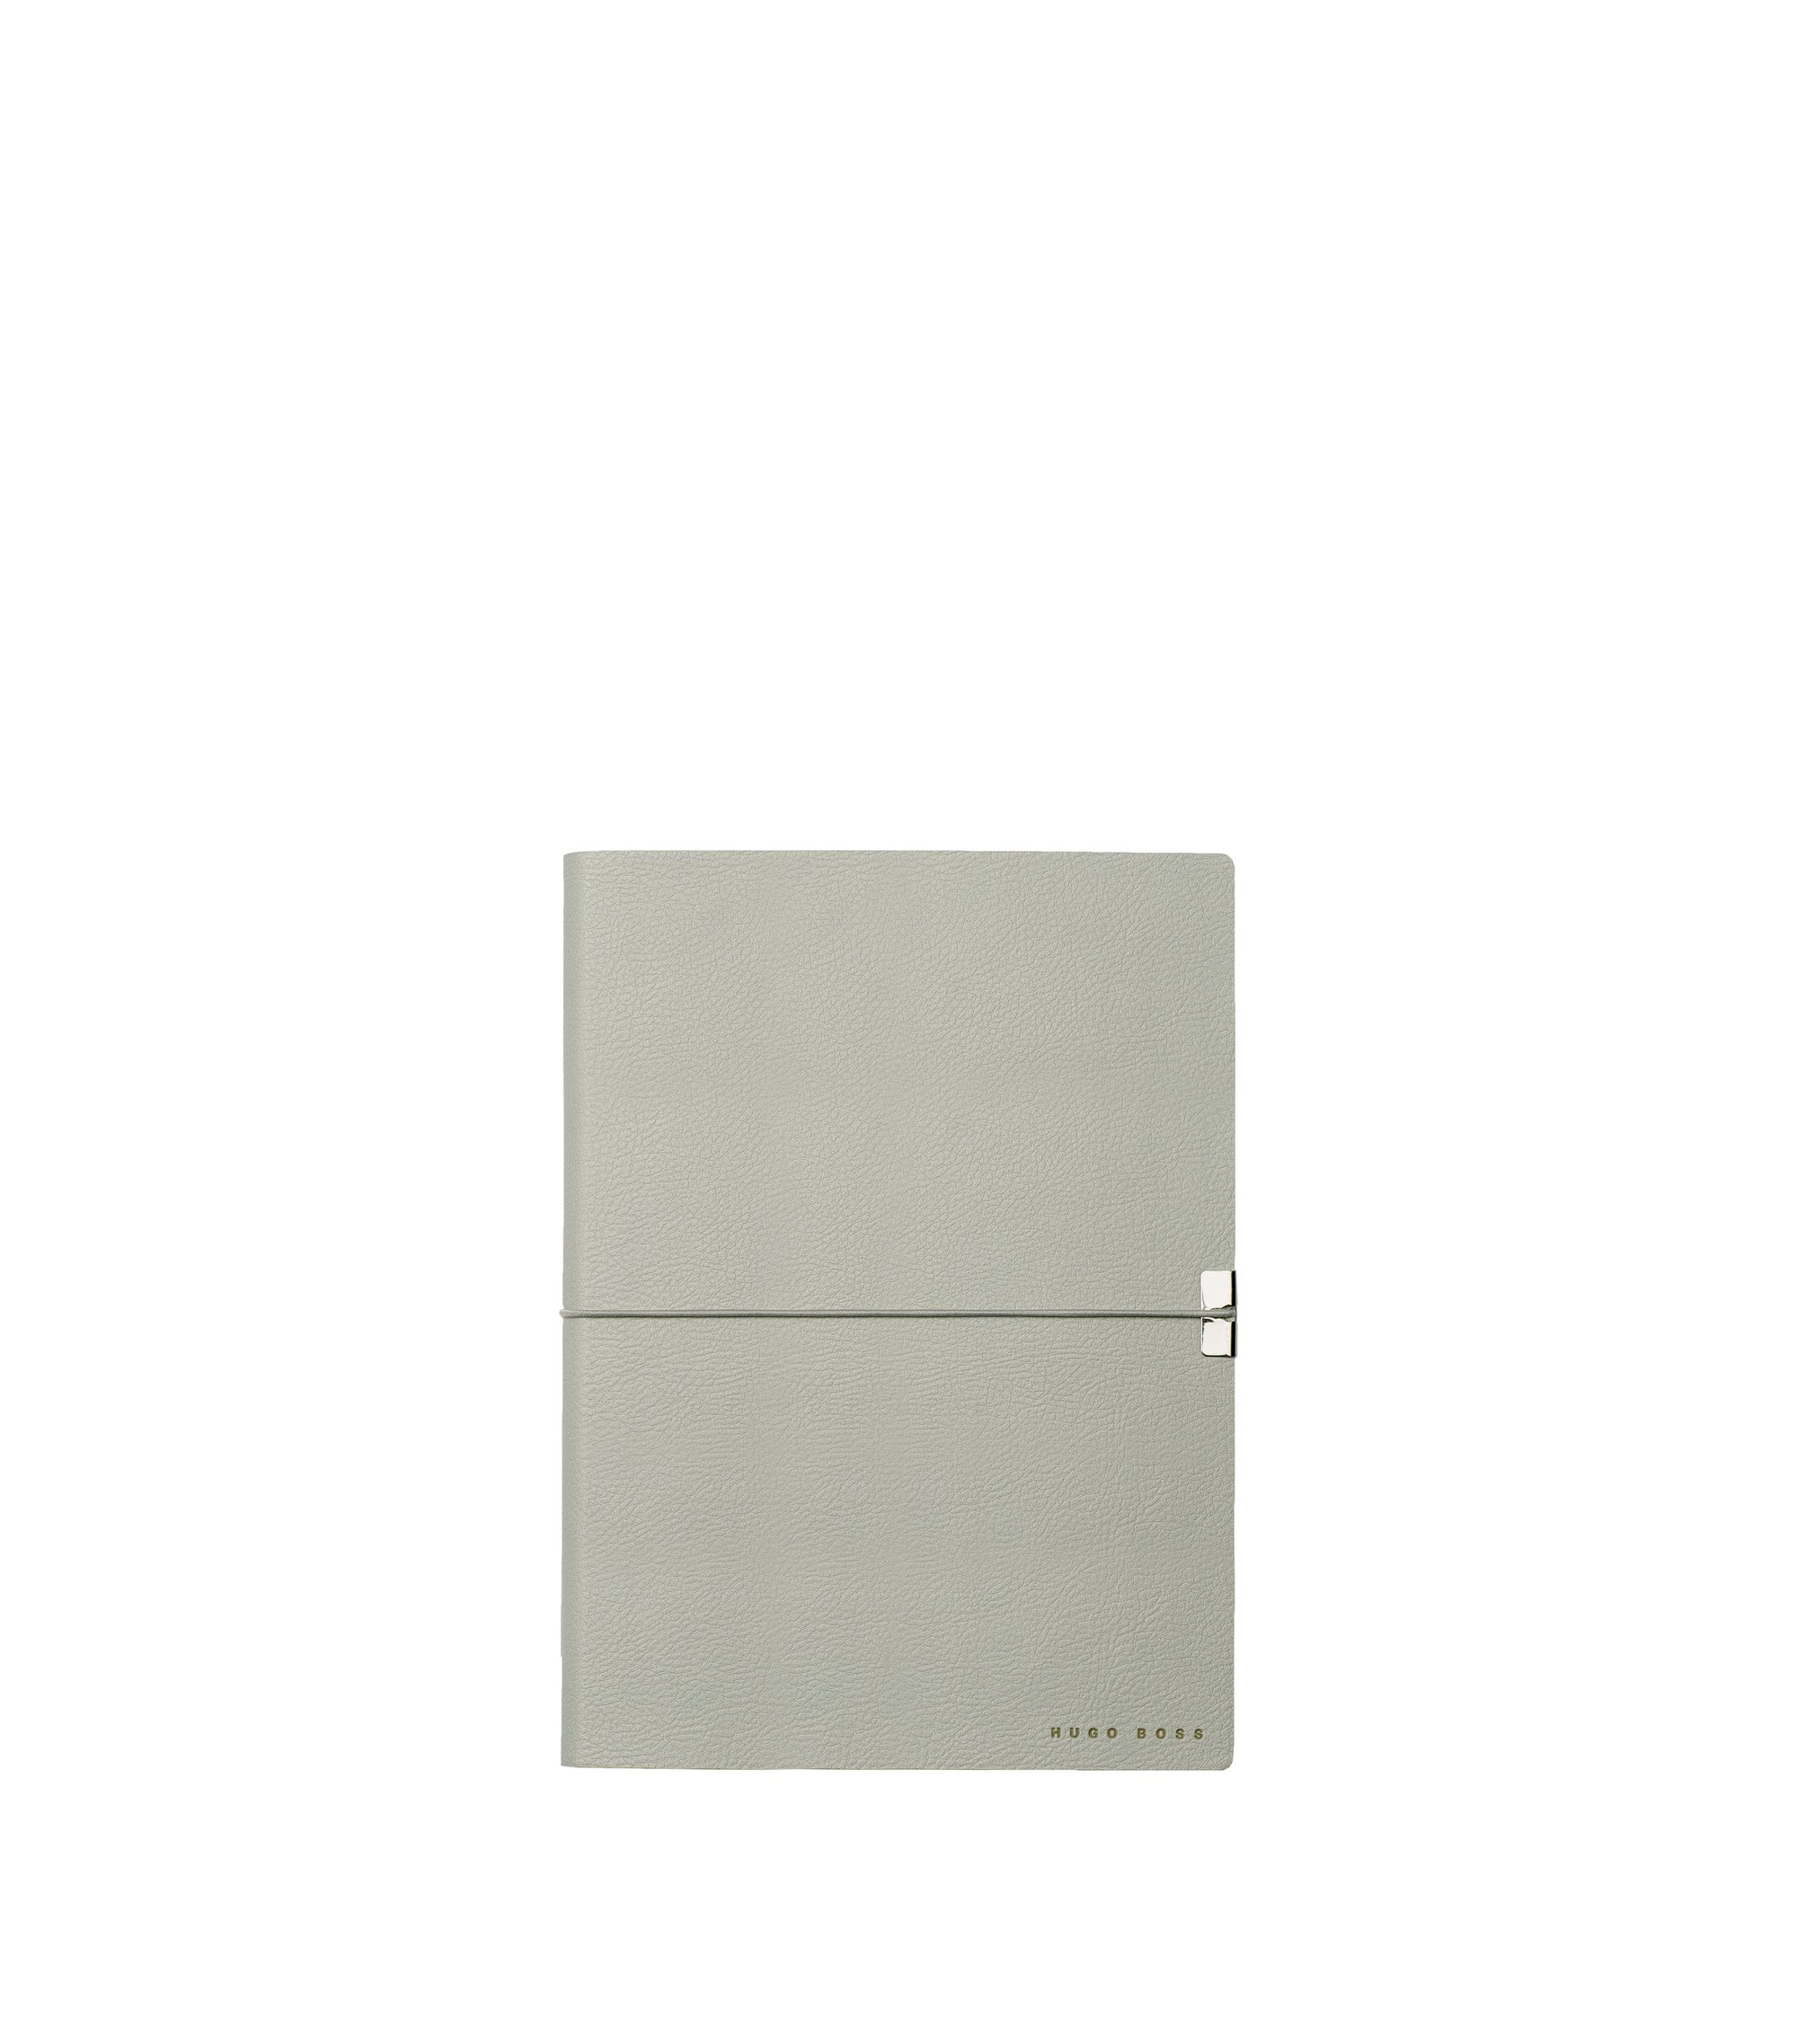 Bloc-notes au format A5 en similicuir gris, Gris